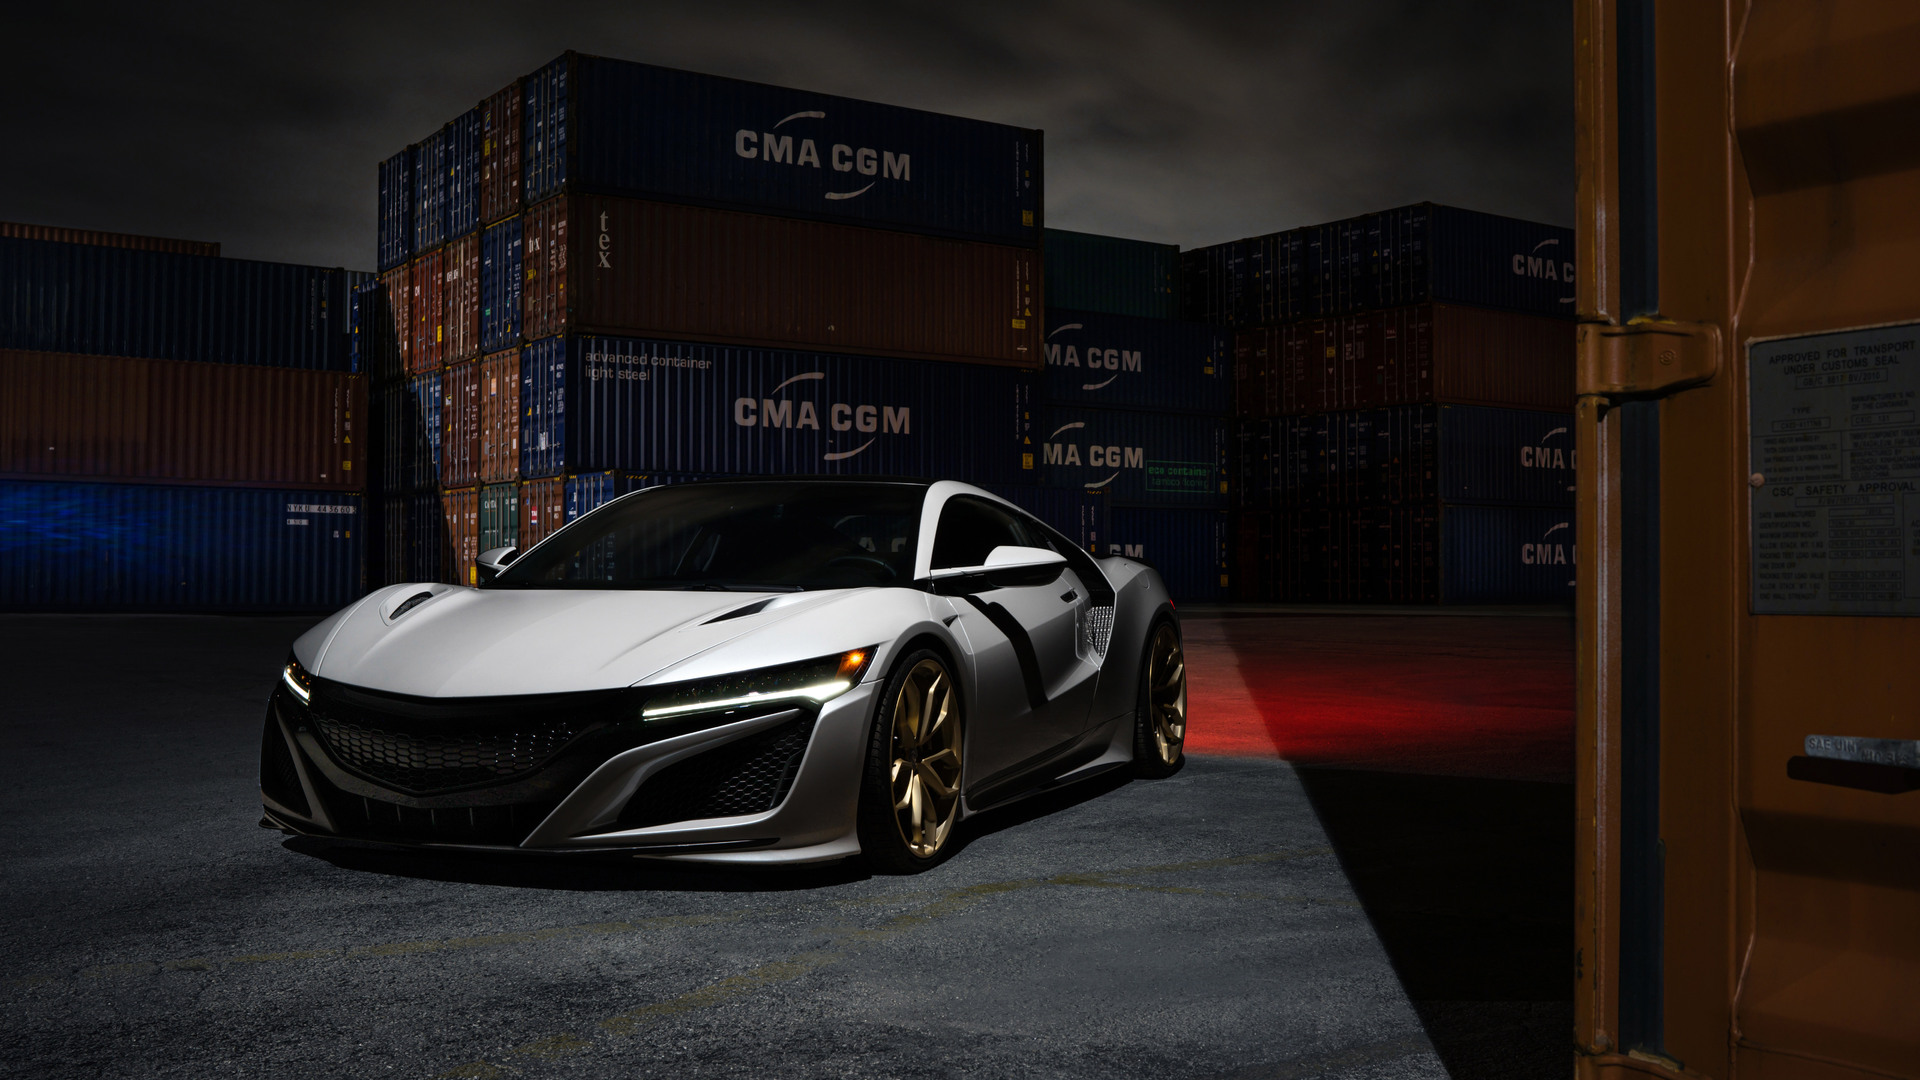 1920x1080 Acura Nsx 8k Laptop Full Hd 1080p Hd 4k Wallpapers Images